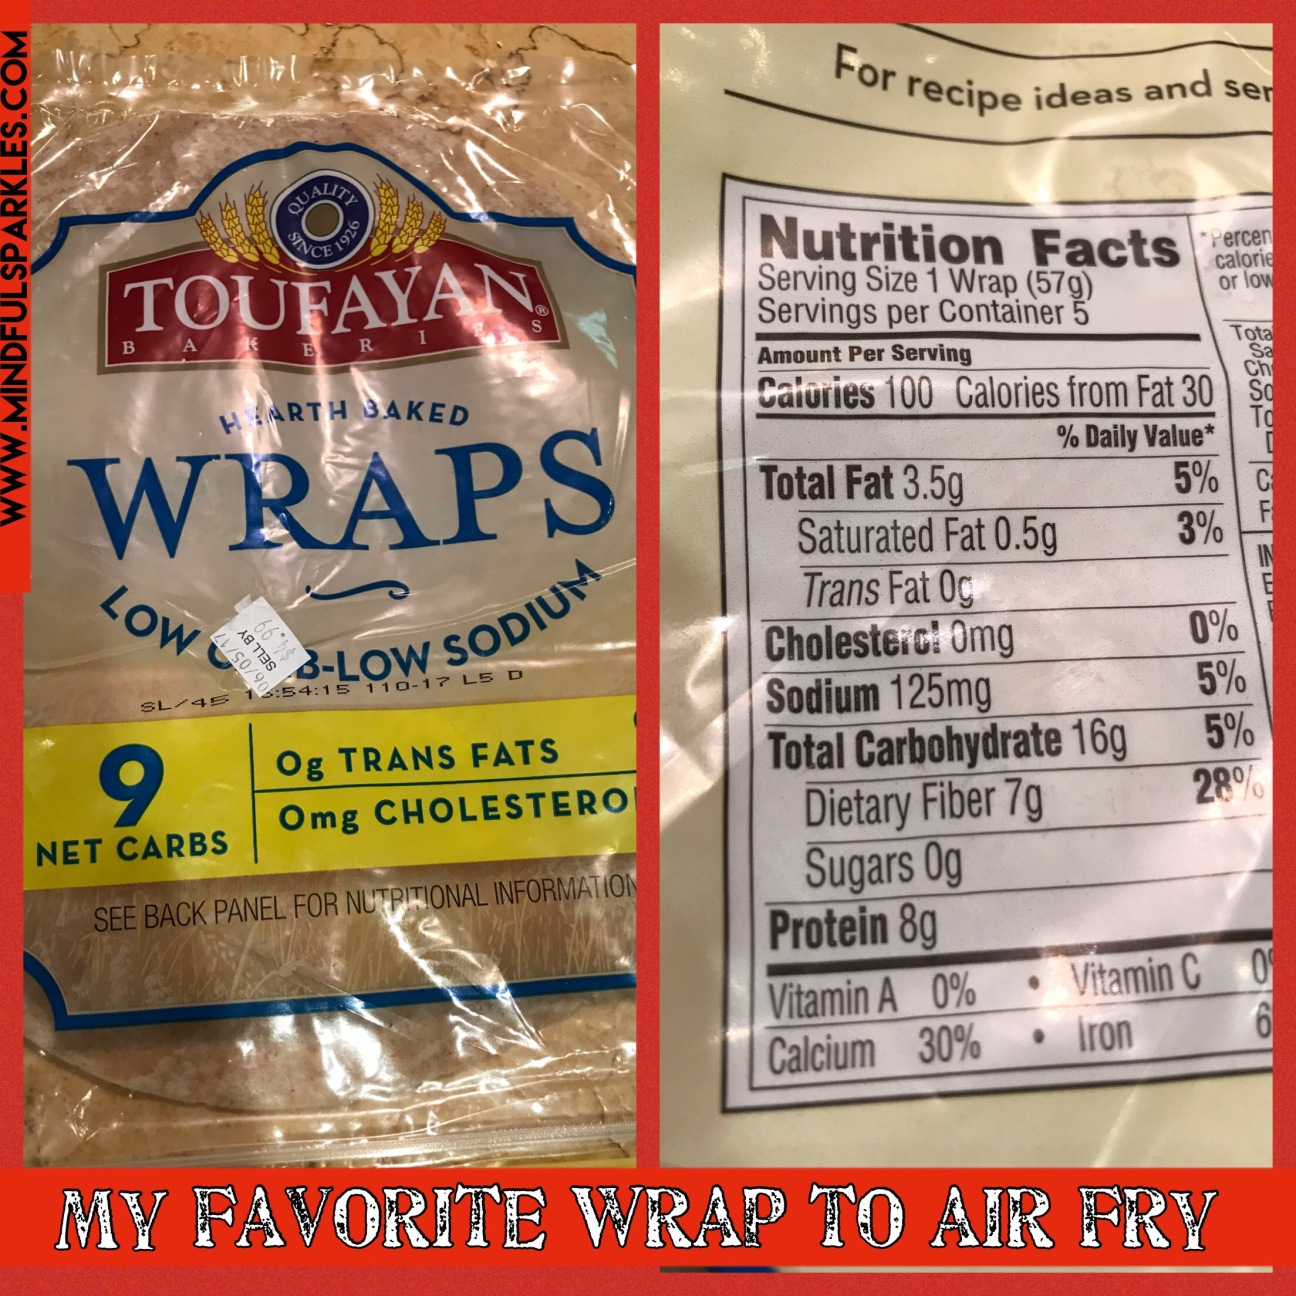 My Preferred Wrap Brand is Toufayan